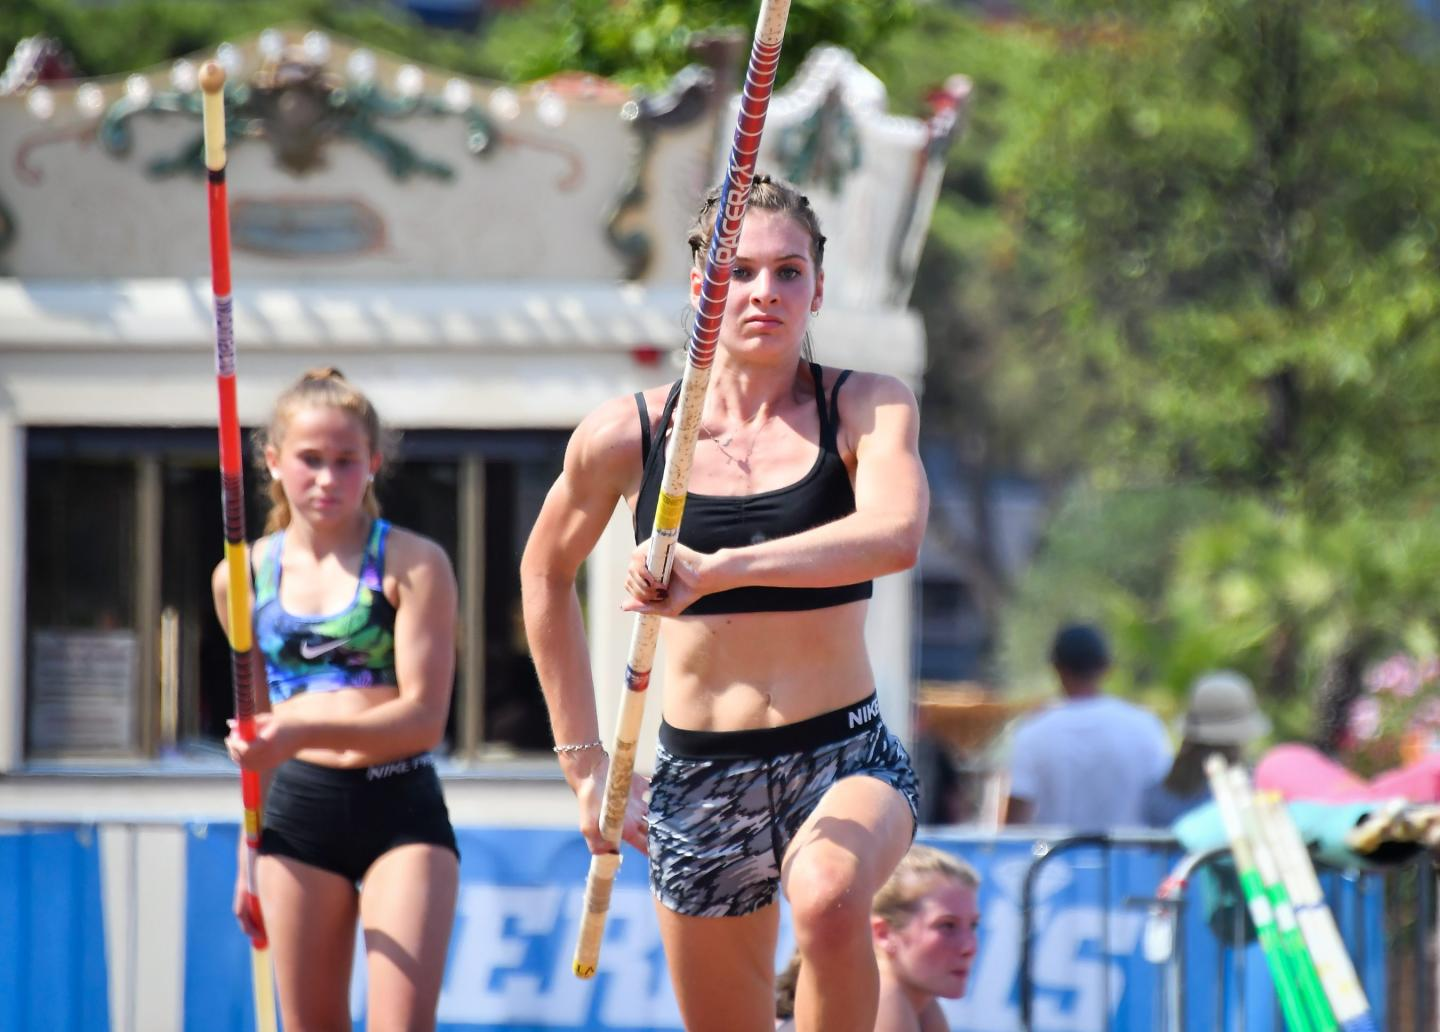 Pole vaulting demonstration